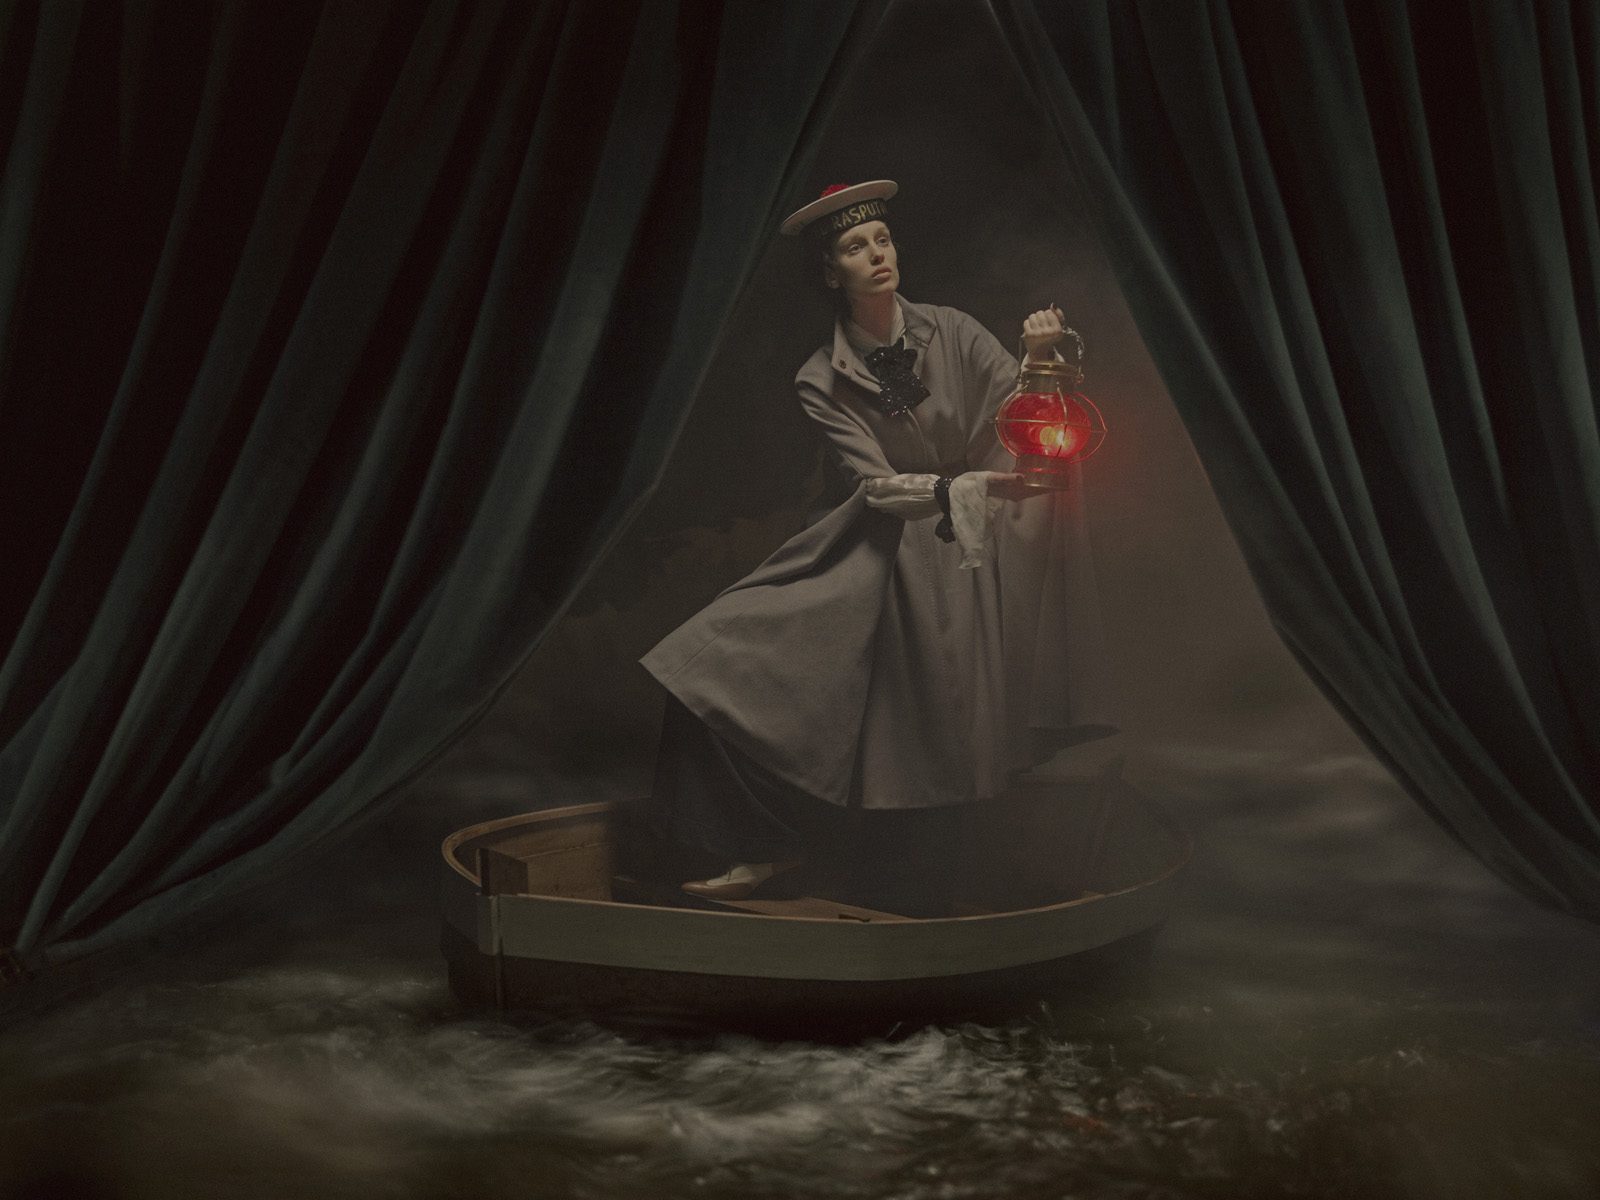 Eugenio Recuenco - Light